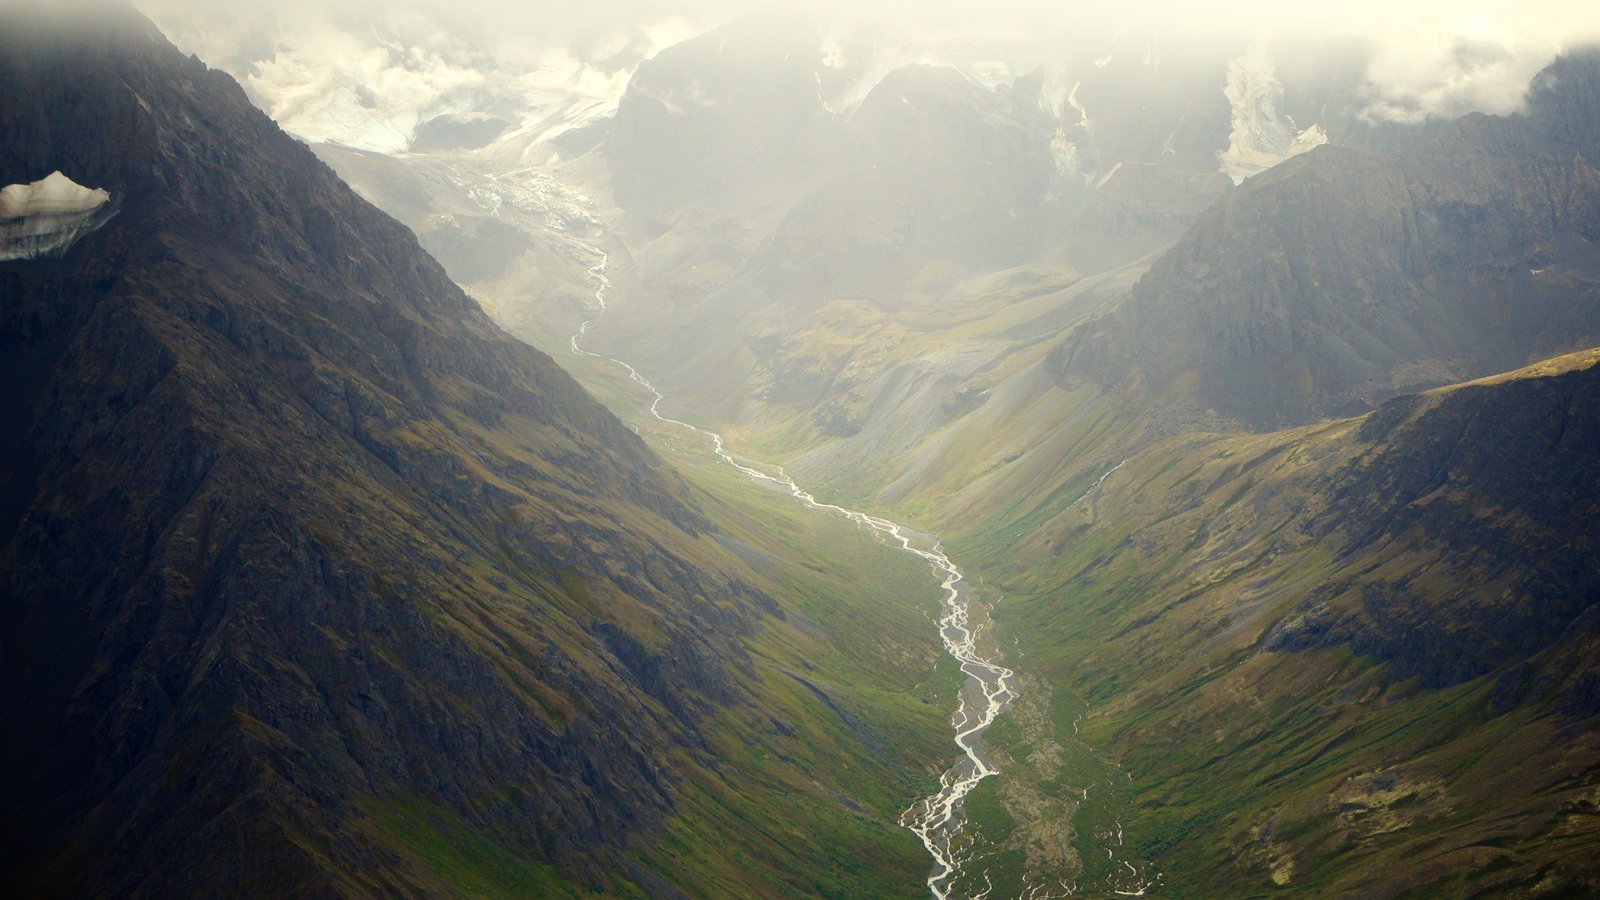 Chugach State Park showing a gorge or canyon, mountains and a river or creek